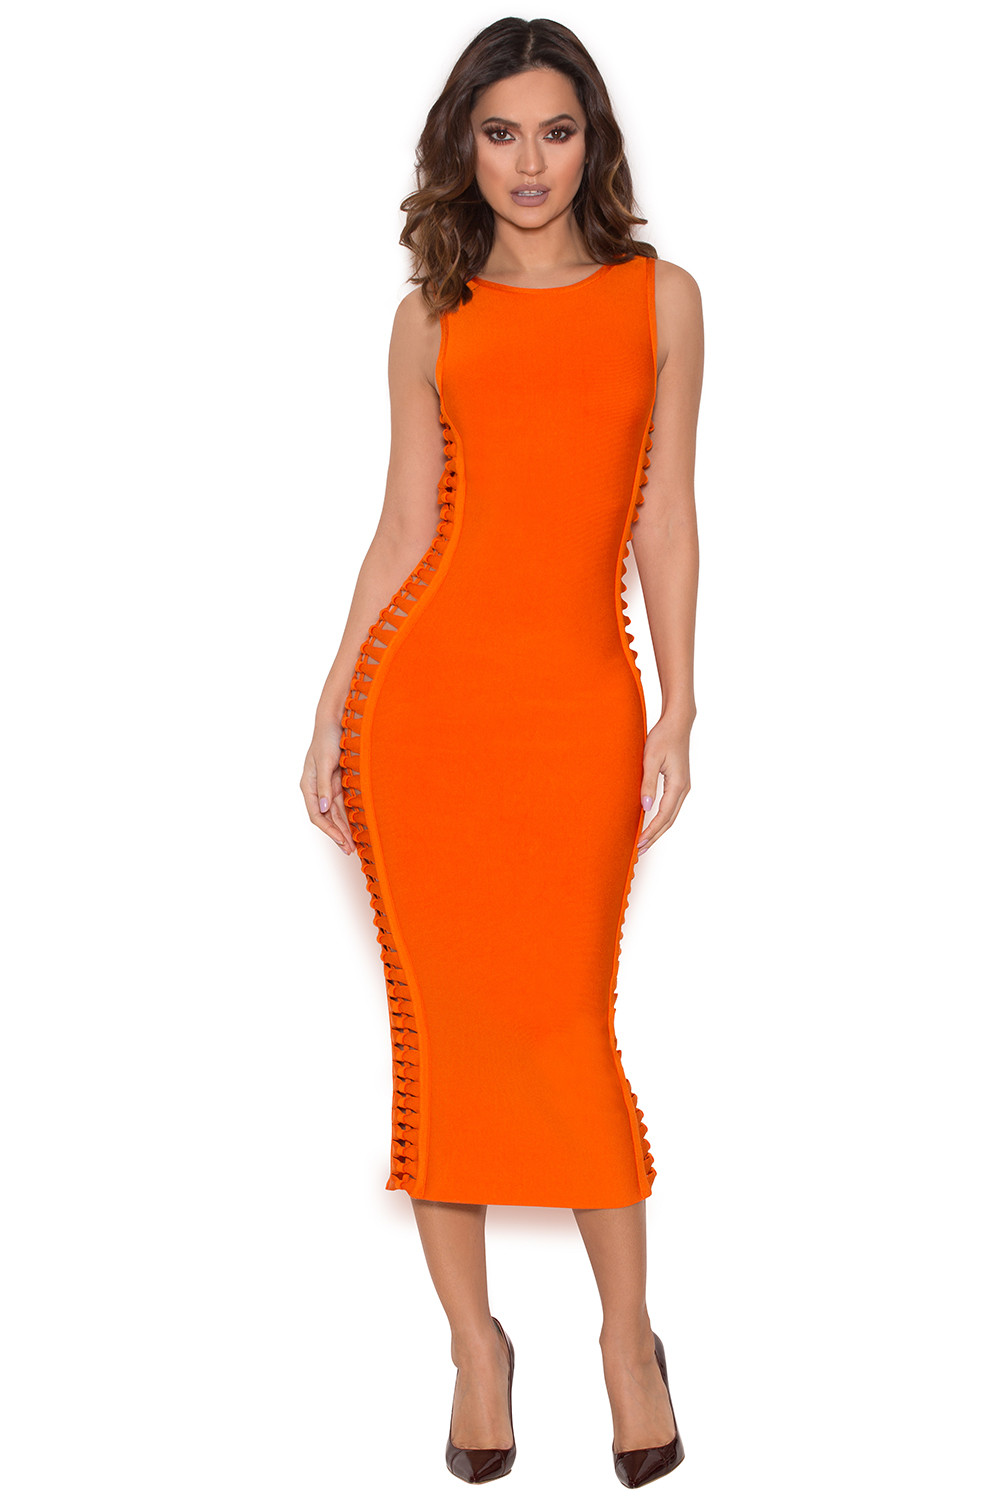 Clothing  Bandage Dresses  U0026#39;Martiniqueu0026#39; Burnt Orange Side Weave Bandage Dress